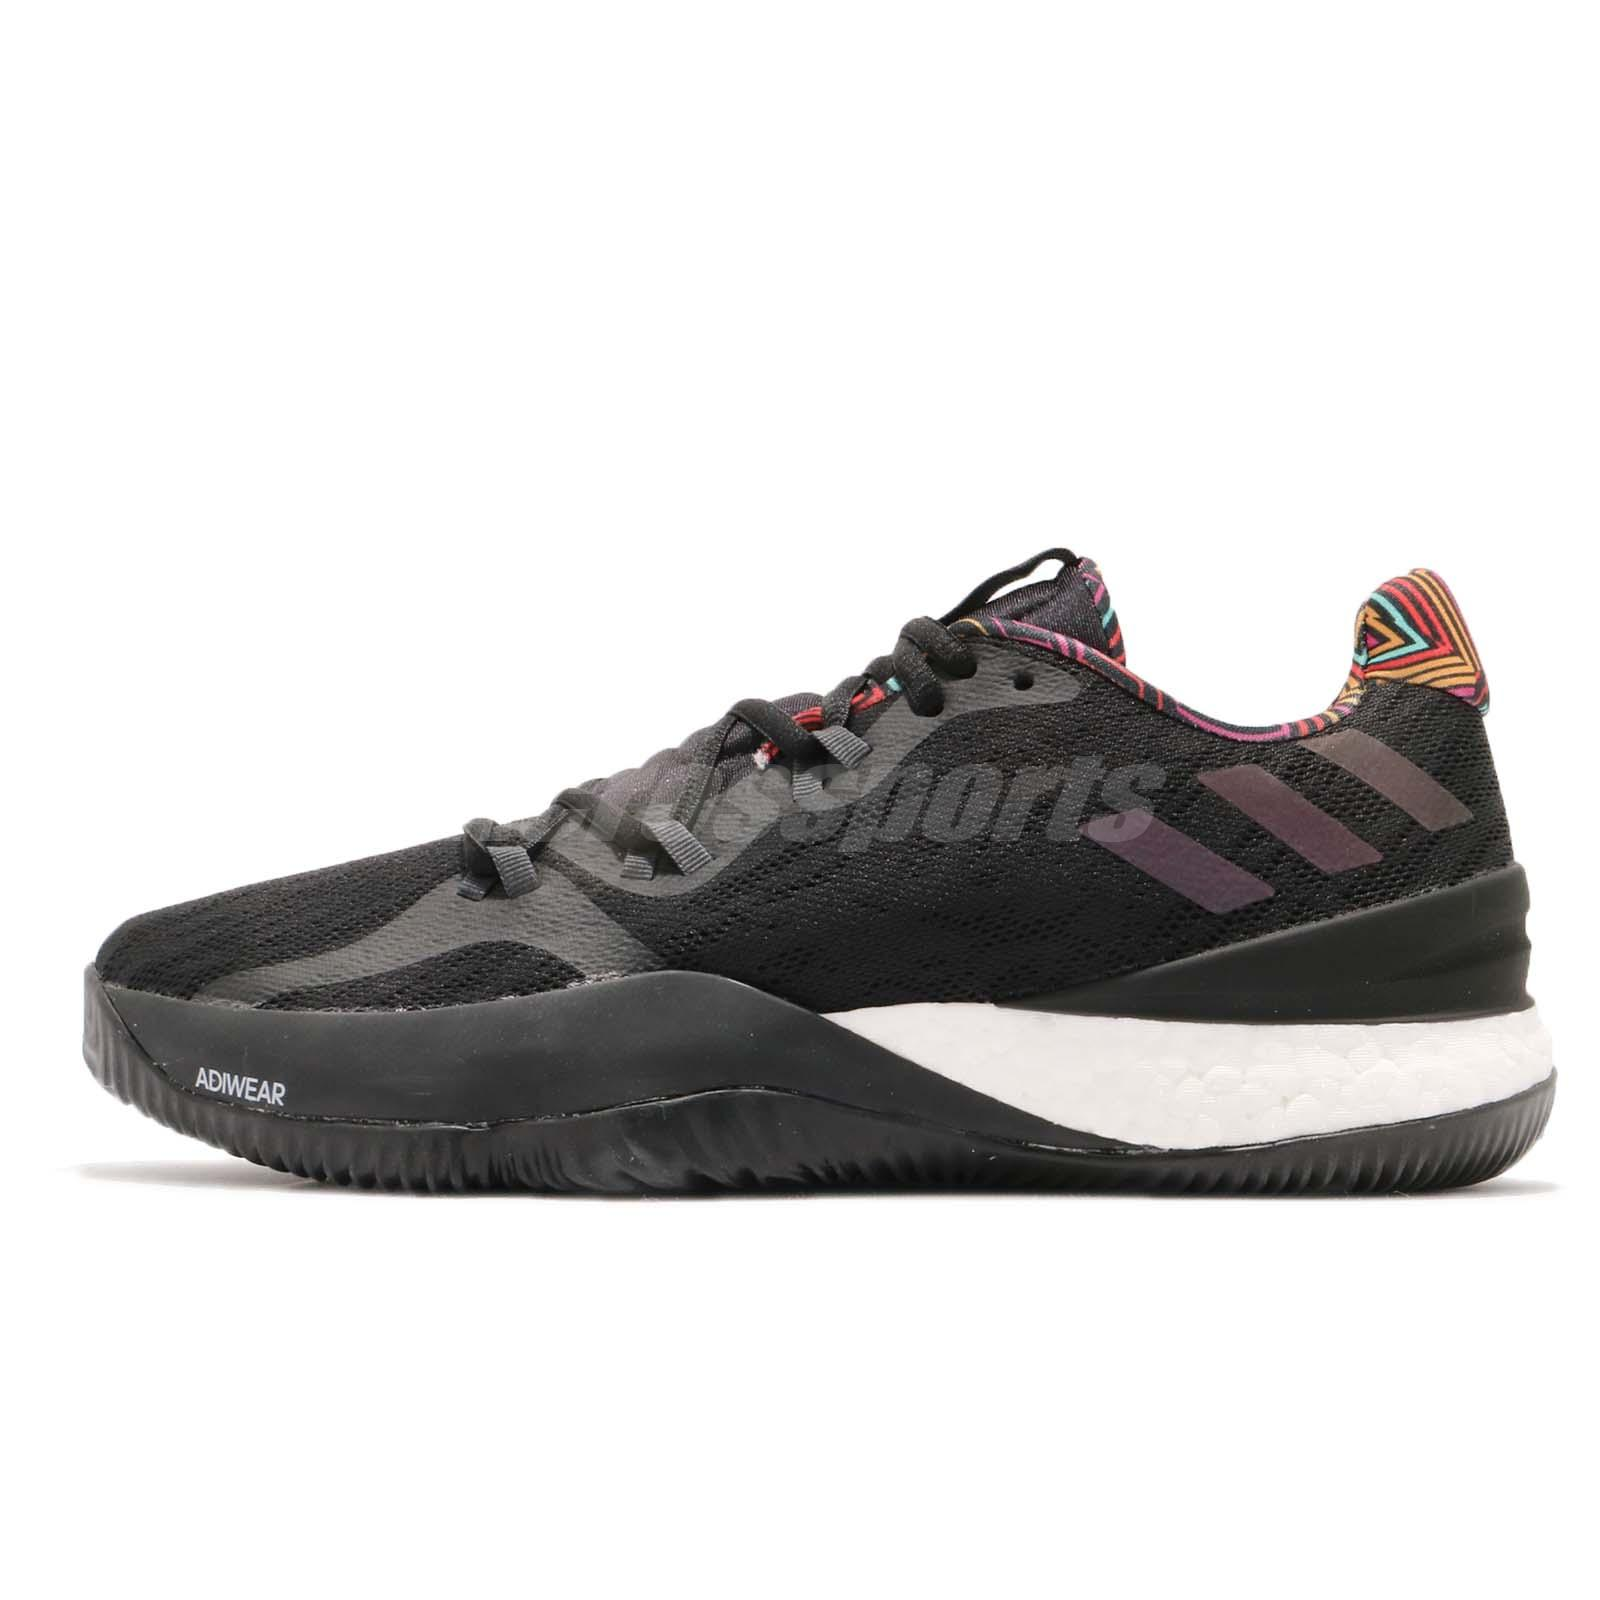 best loved 829df da1ab adidas Crazy Light Boost 2018 Summer Pack Black Grey Men Basketball Shoes  B43799